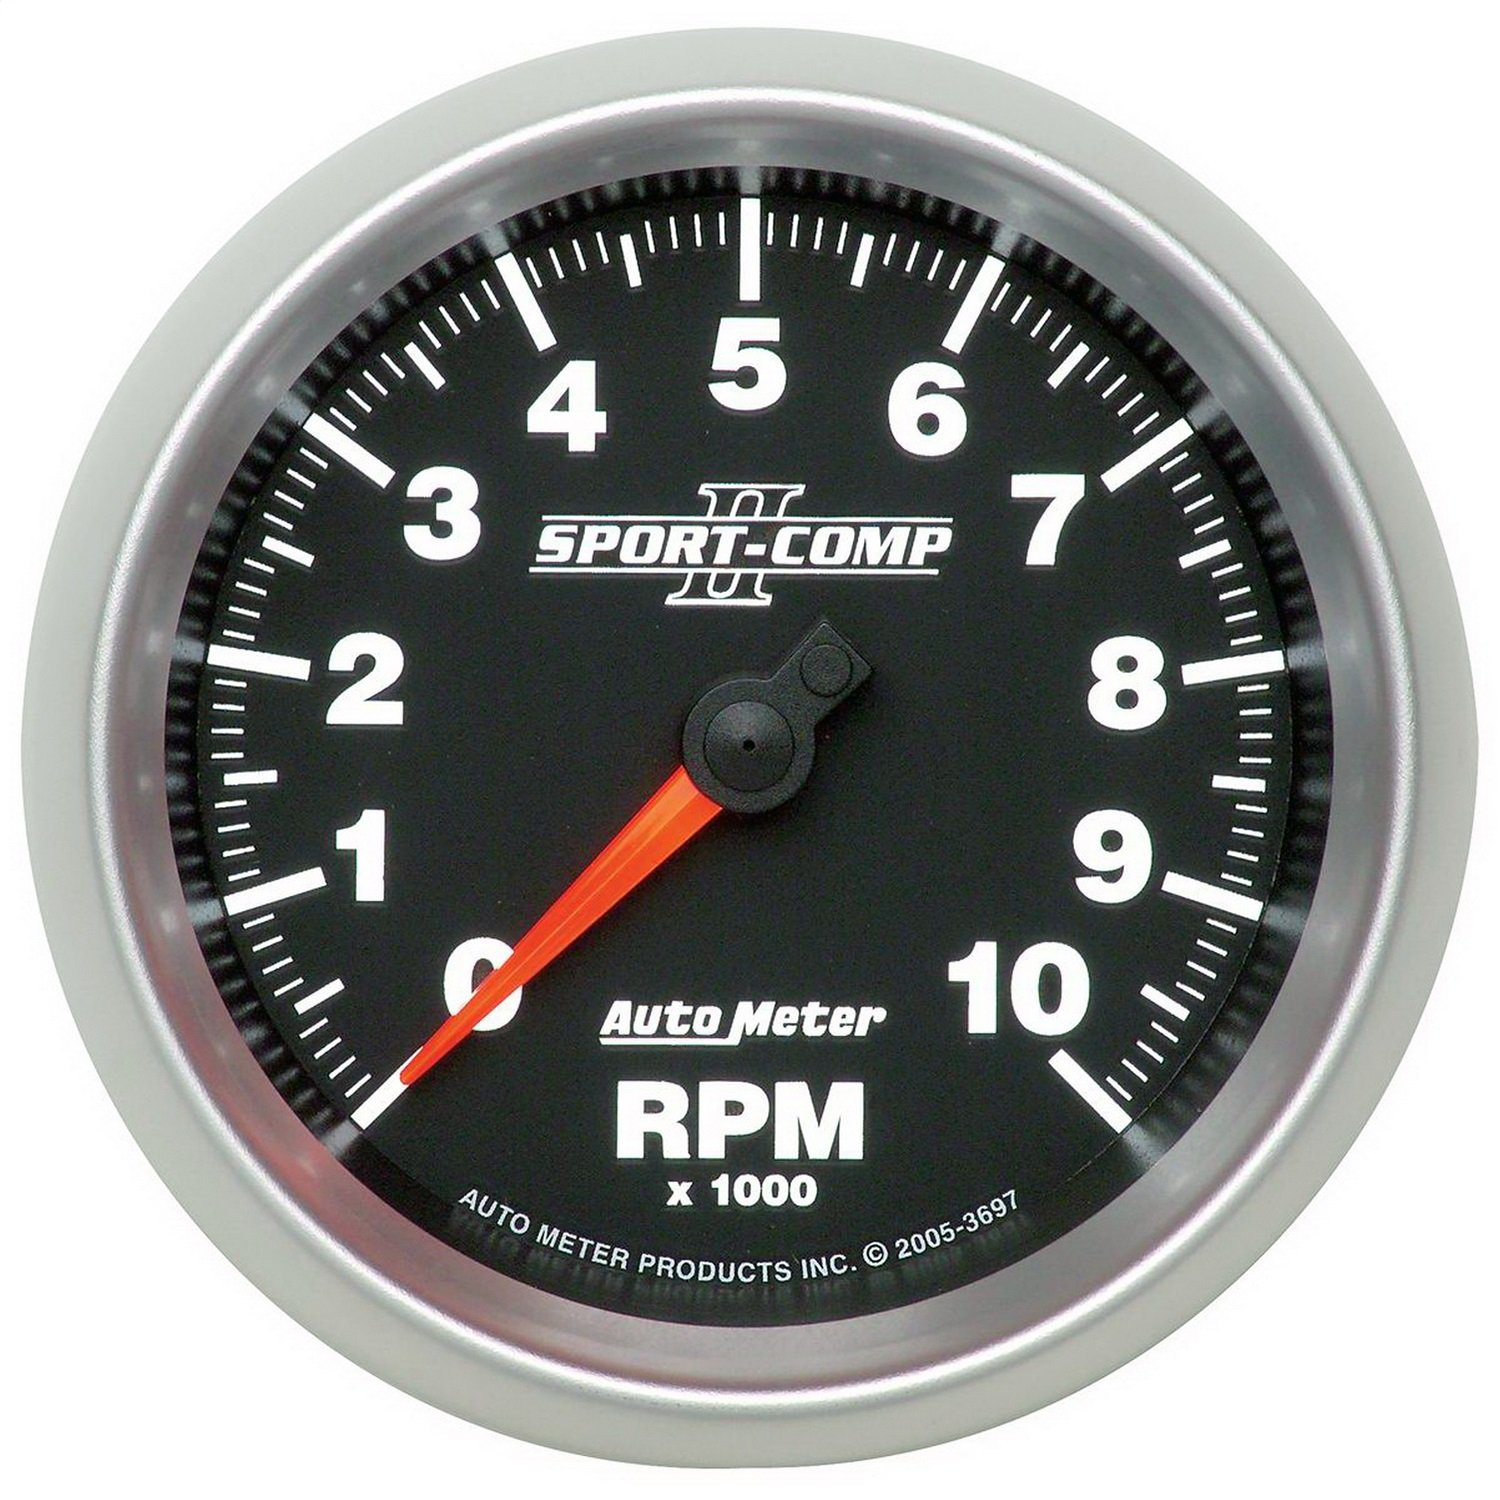 Auto Meter 3697 Sport-Comp II 3-3/8'' 10000 RPM In-Dash Tachometer by Auto Meter (Image #1)